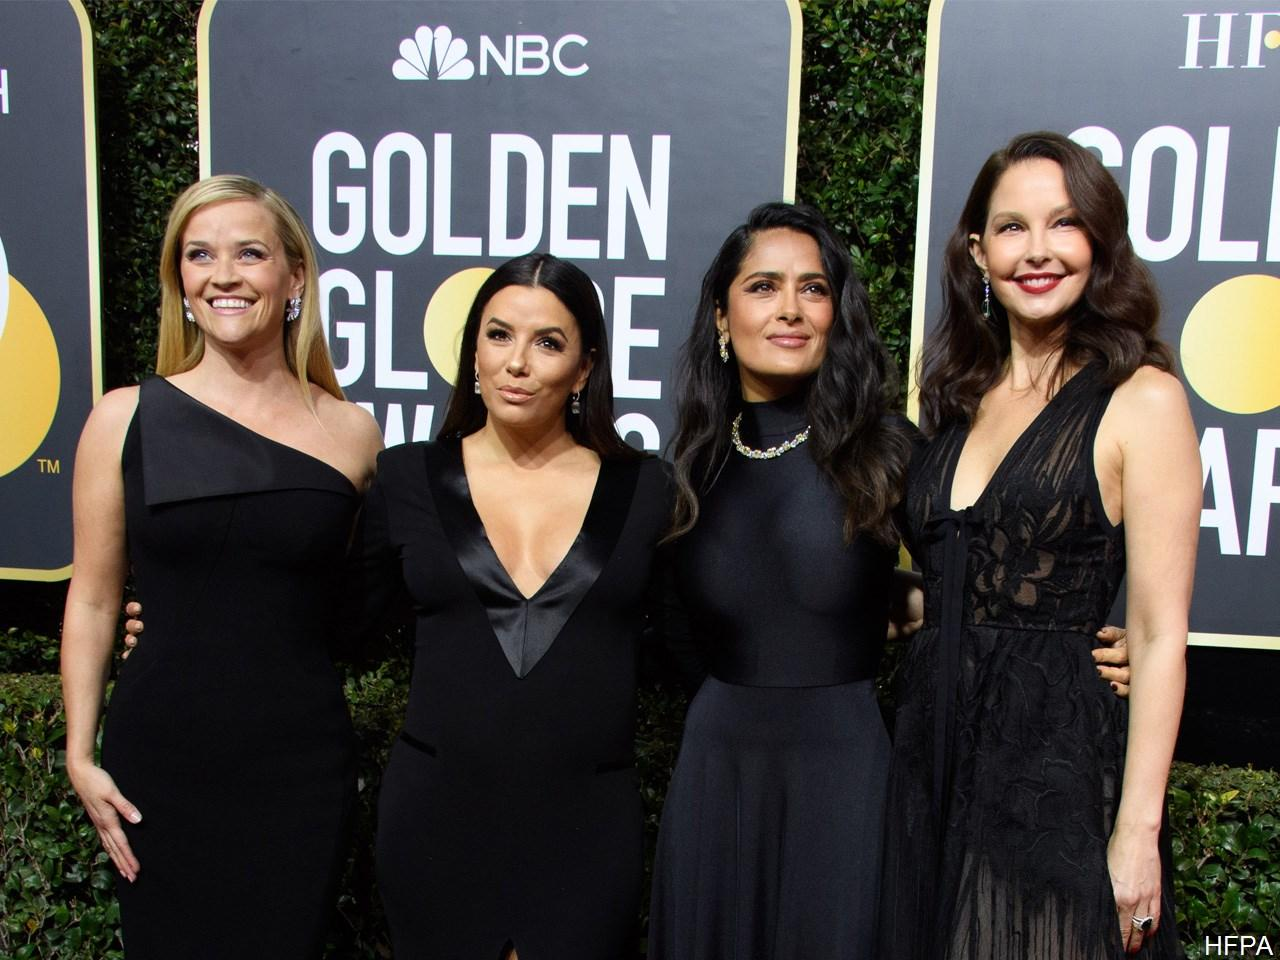 LDS Living article on modest dresses at the Golden Globes raises eyebrows (Photo: HFPA via MGN)